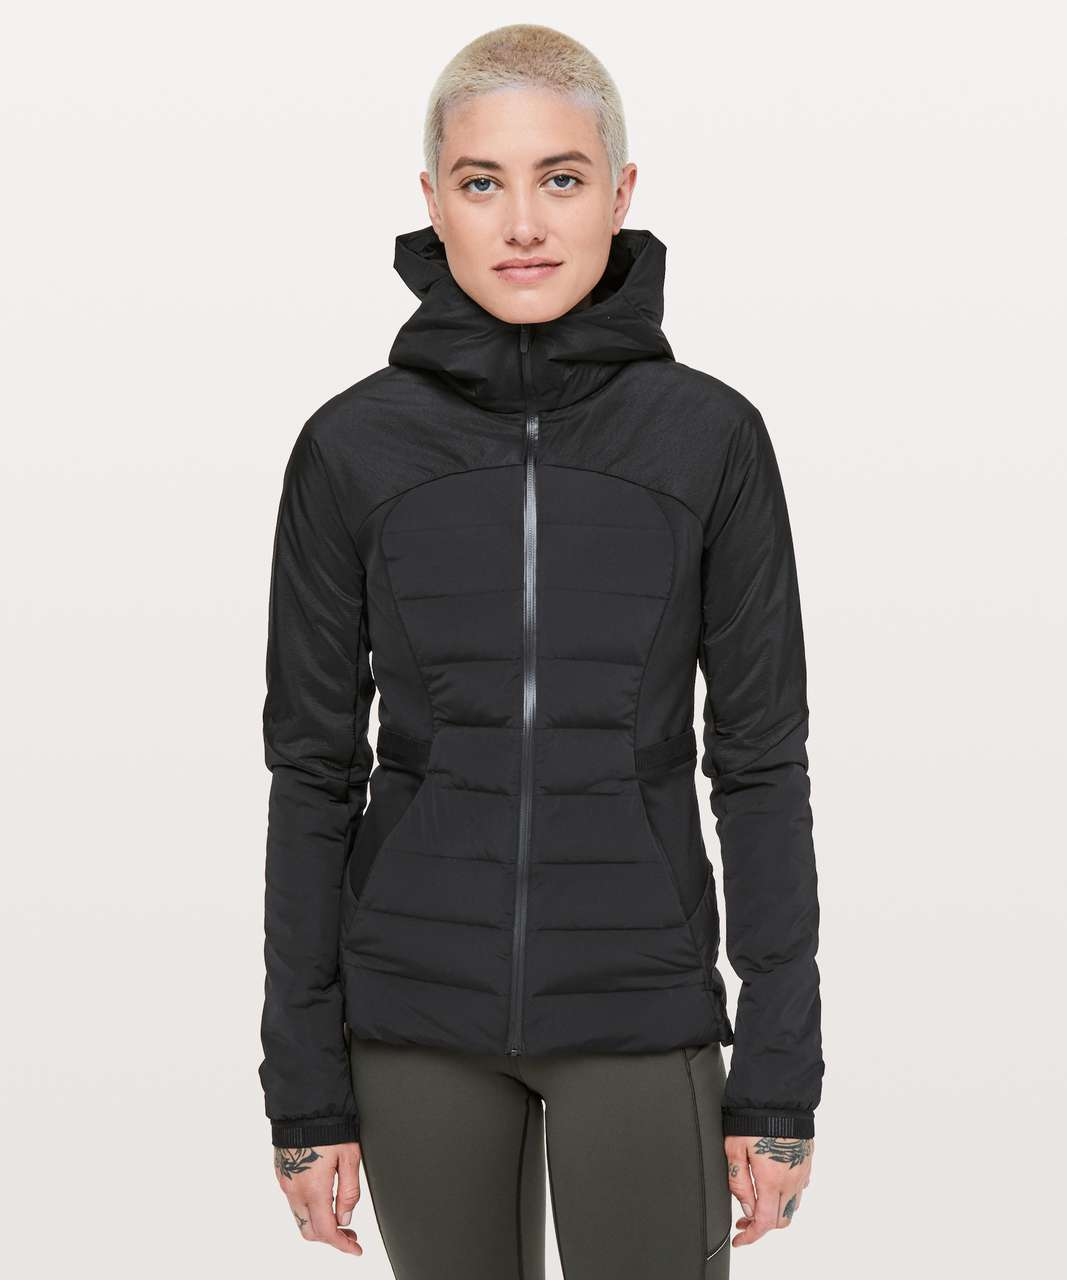 351b27f5e Lululemon Down For It All Jacket - Black